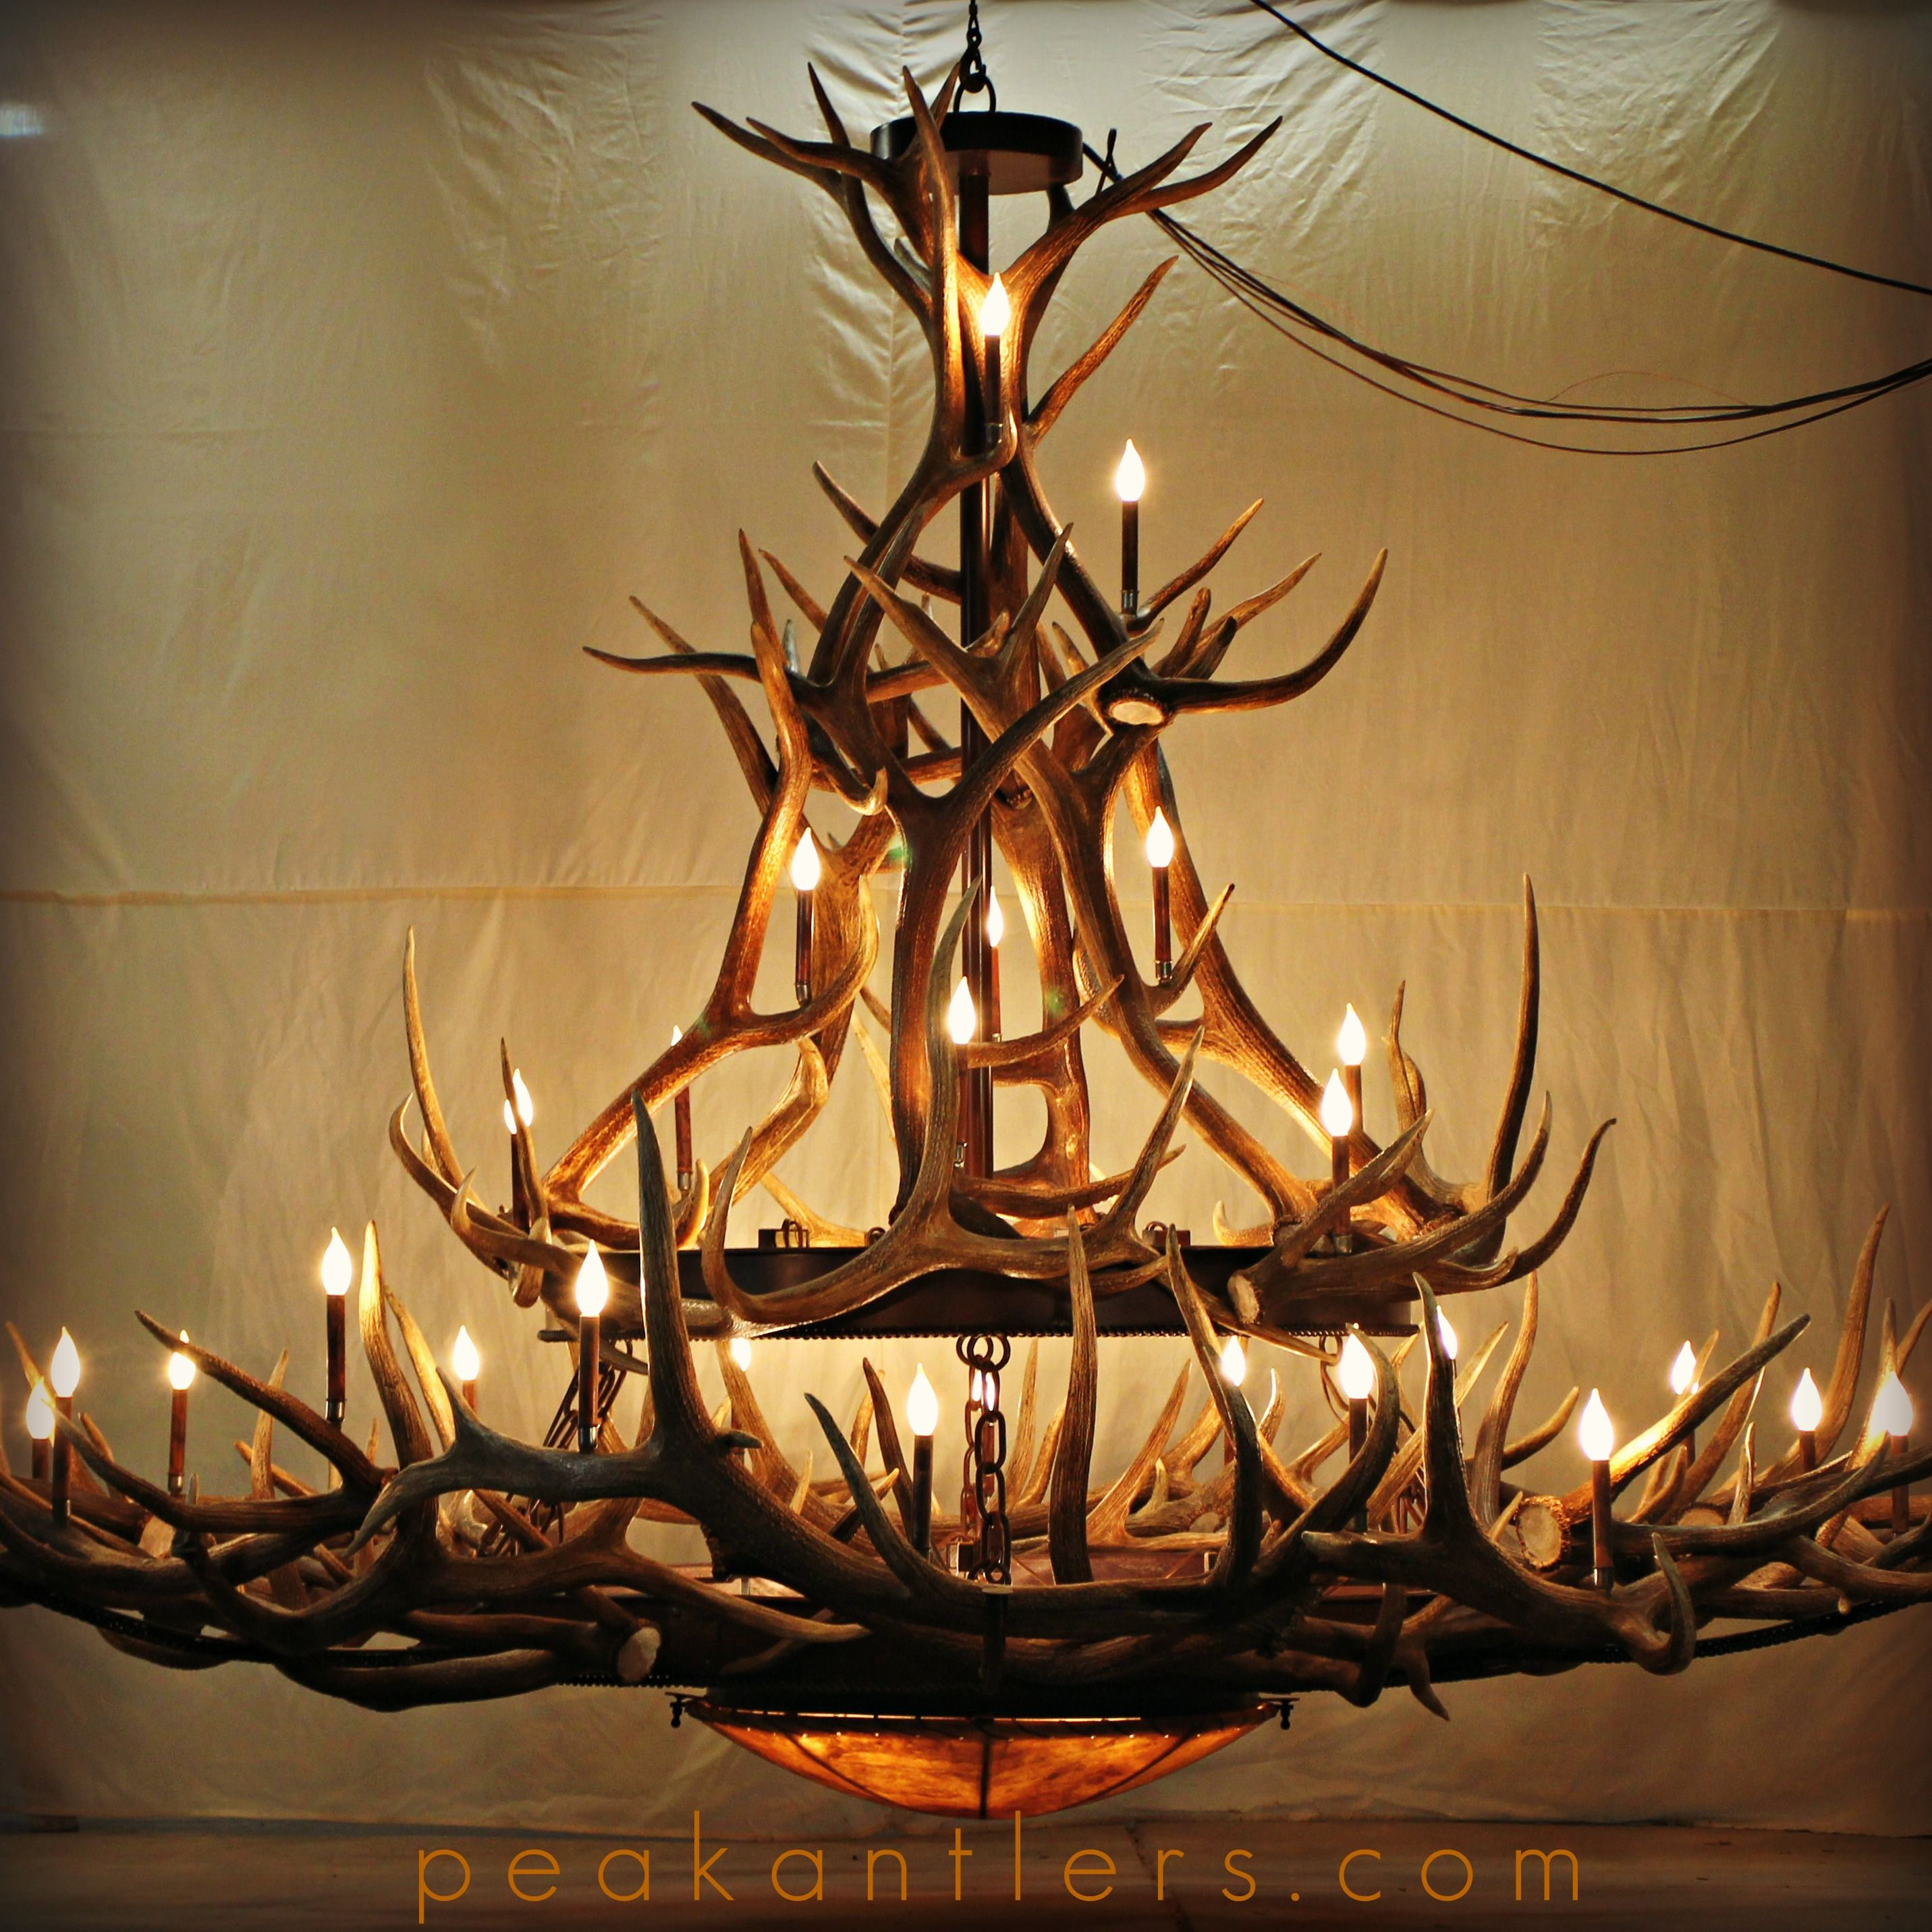 Two Tiered Elk Antler Chandelier Took 8 Weeks To Complete Used 33 Sheds